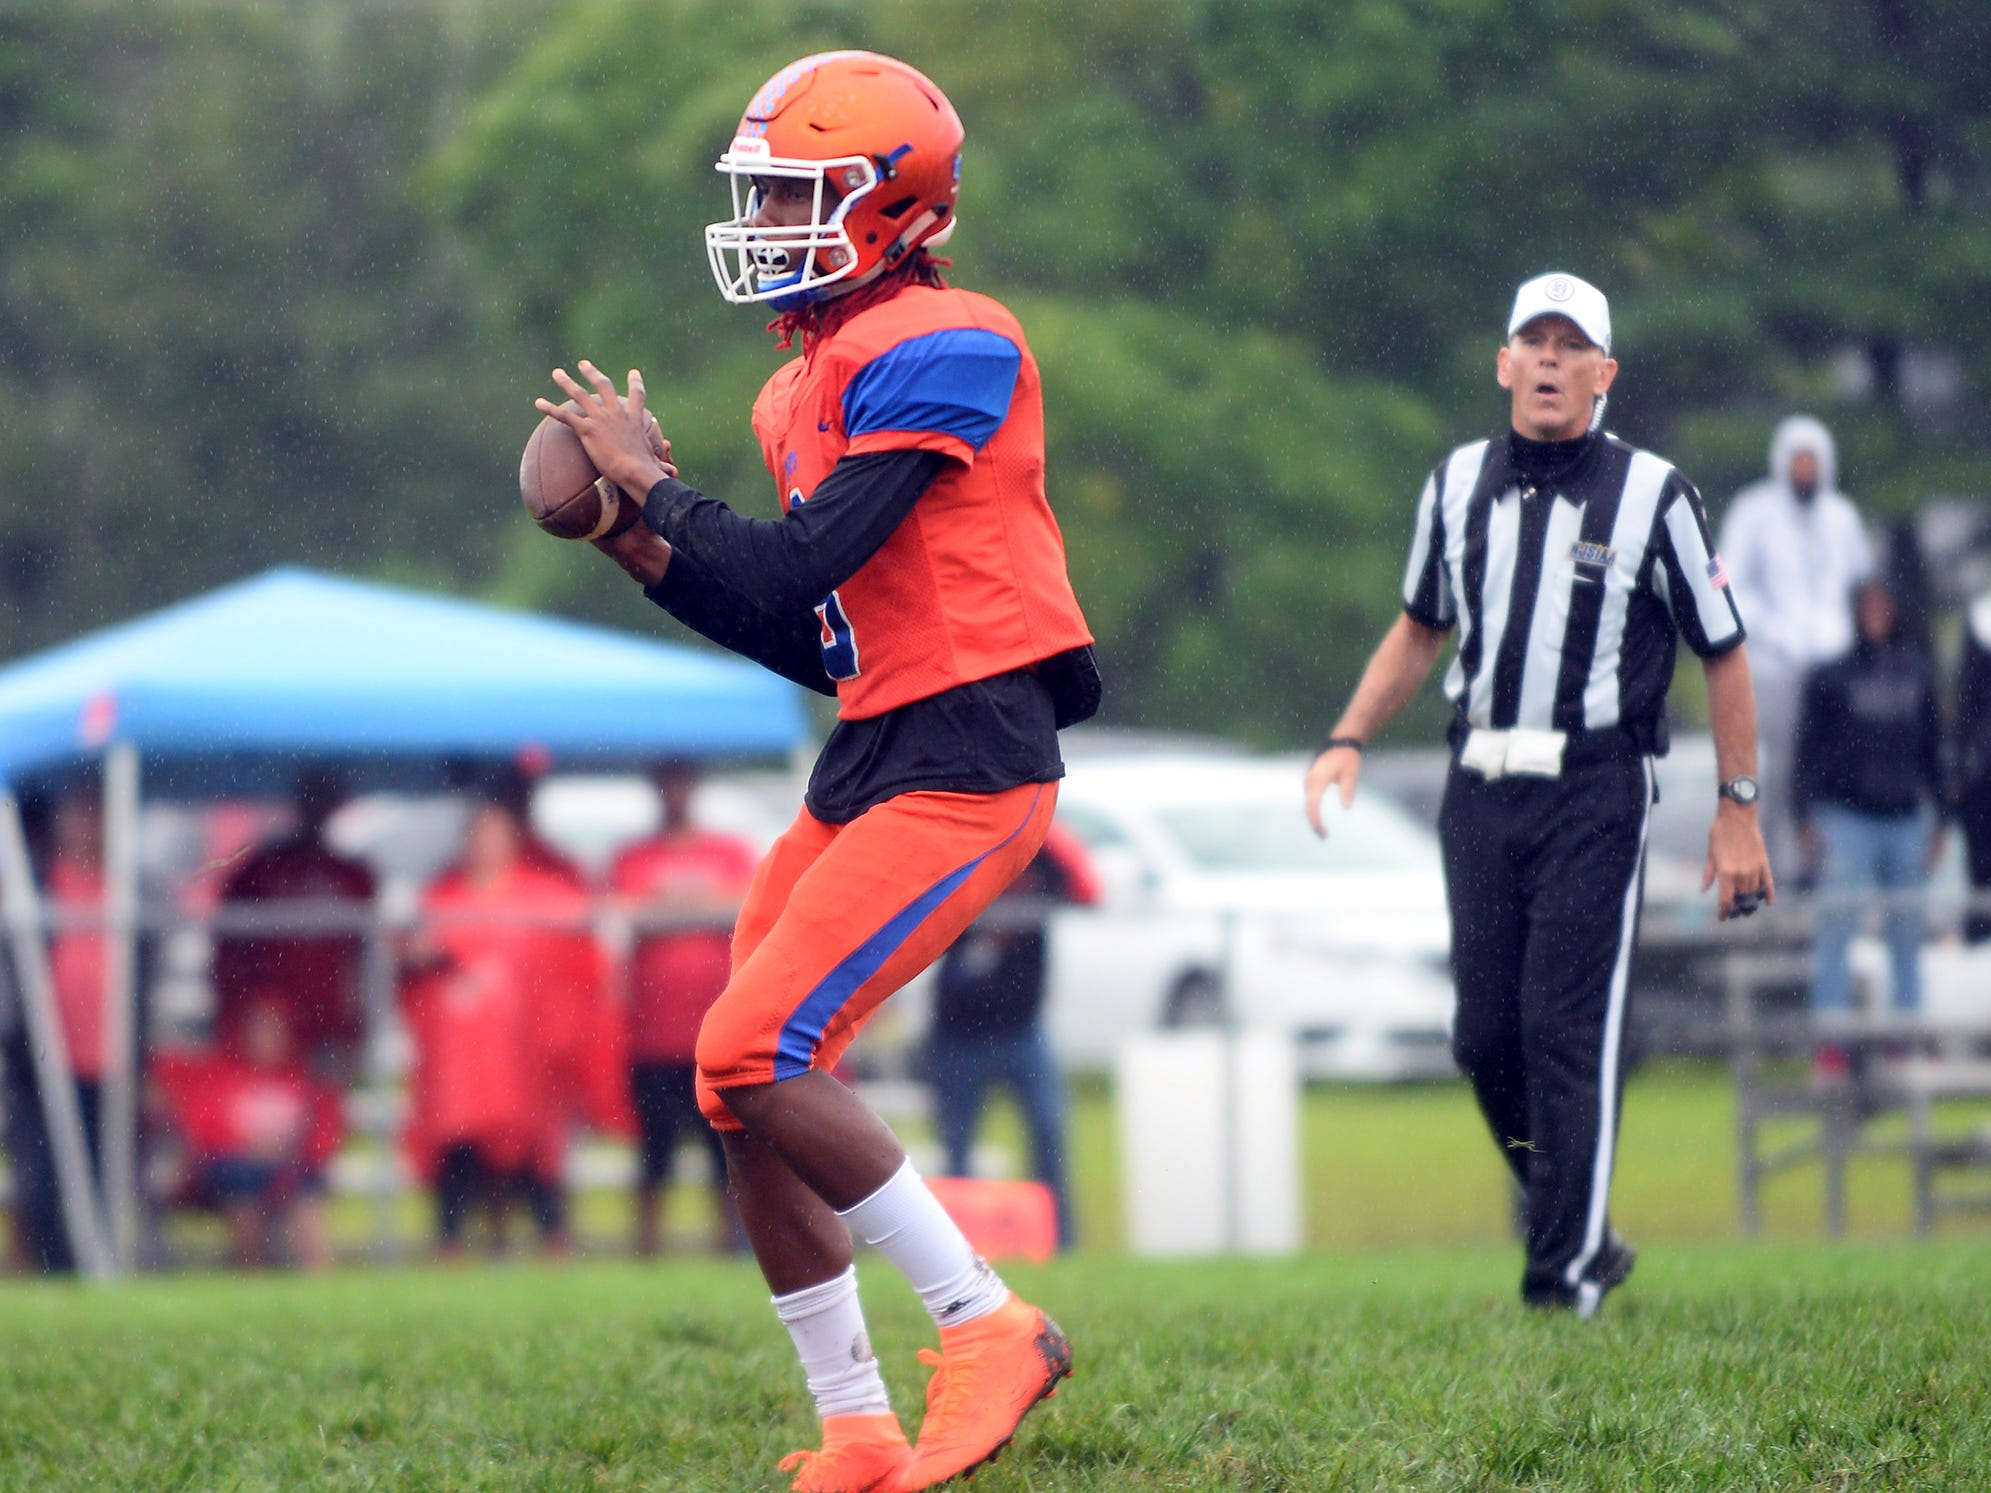 Millville QB, Maurice Smith (8) checks down field for a open receiver during a game against St. Joseph. The visiting Thunderbolts lost the outing to the Wildcats in Hammonton on Saturday, September 8.